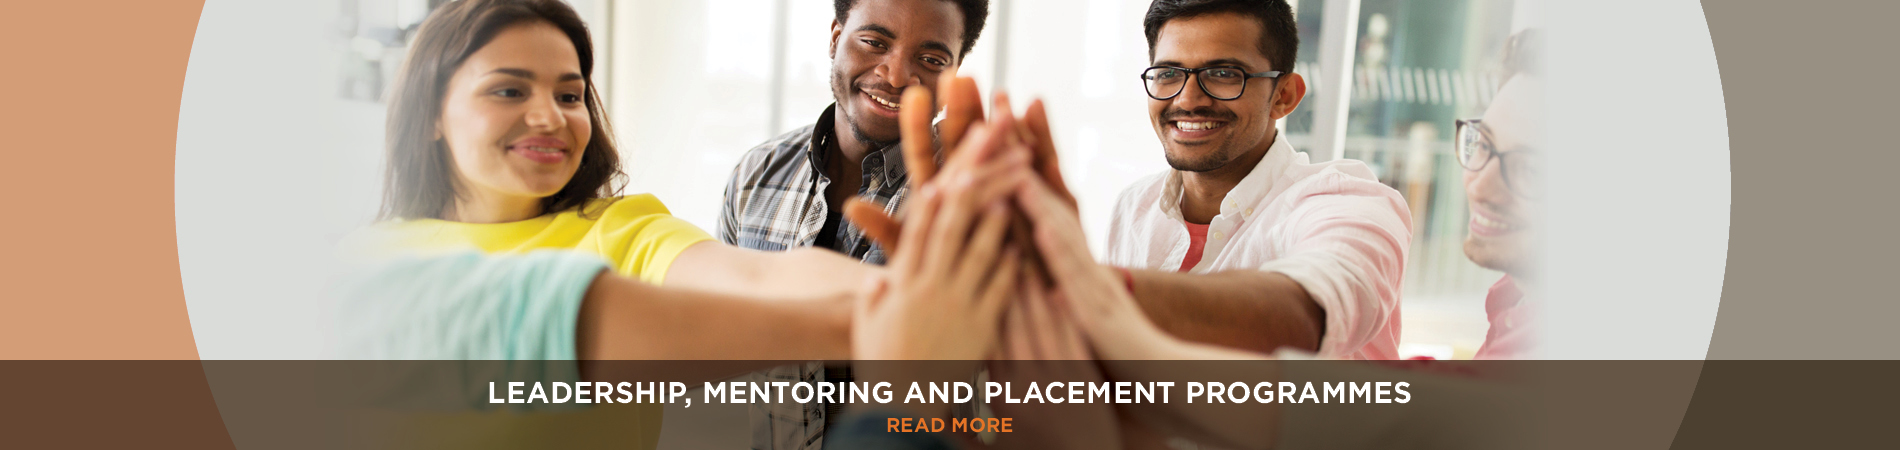 Leadership, Mentoring and Placement Programmes